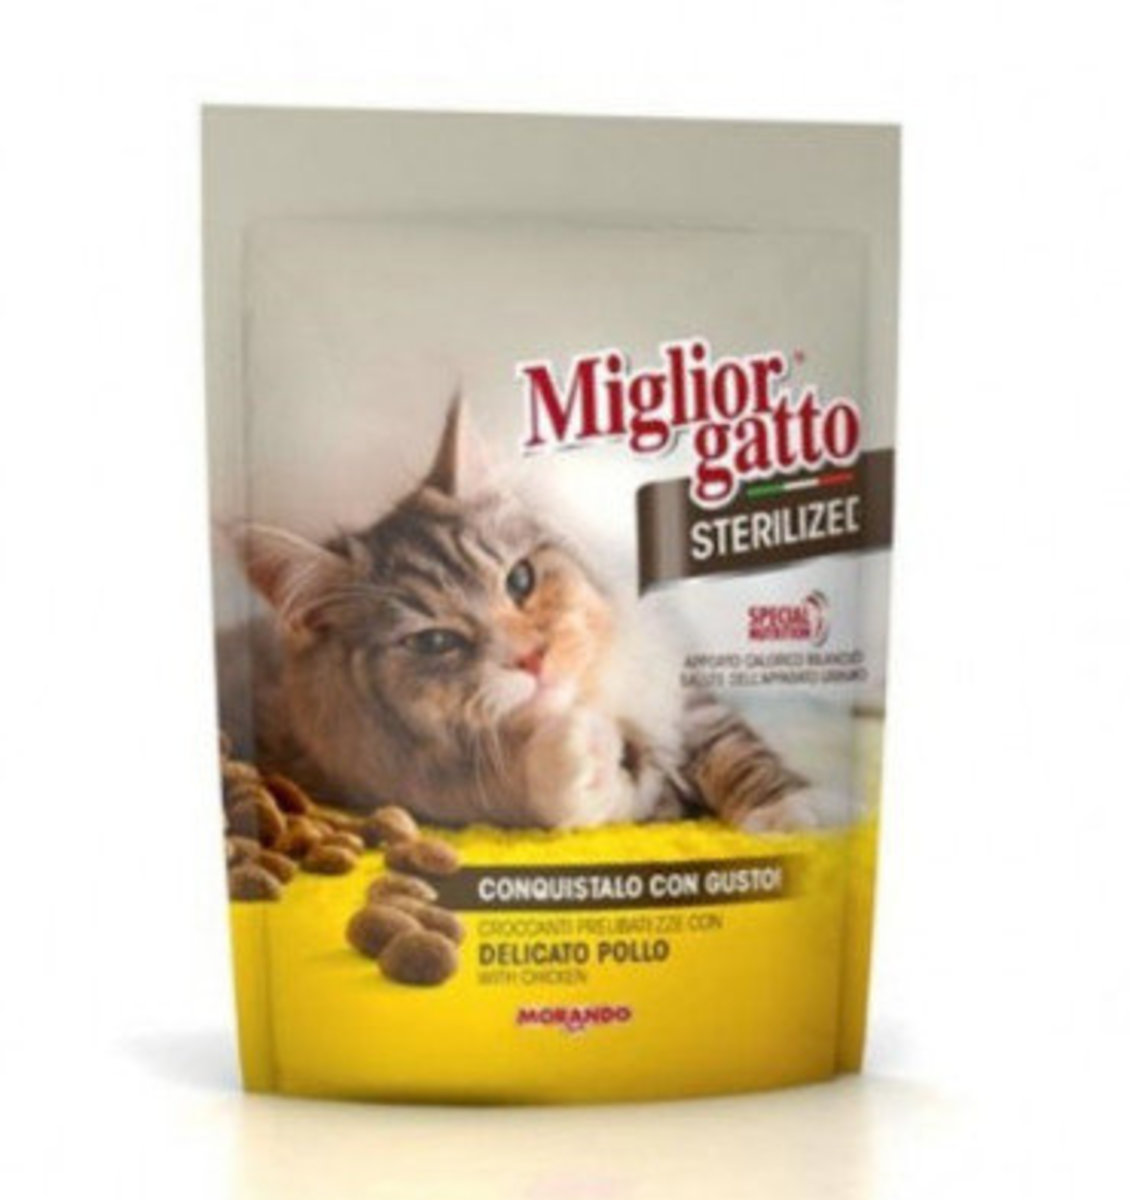 MORANDO Migliorgatto Sterilized with Chicken Dry Cat Food 800g